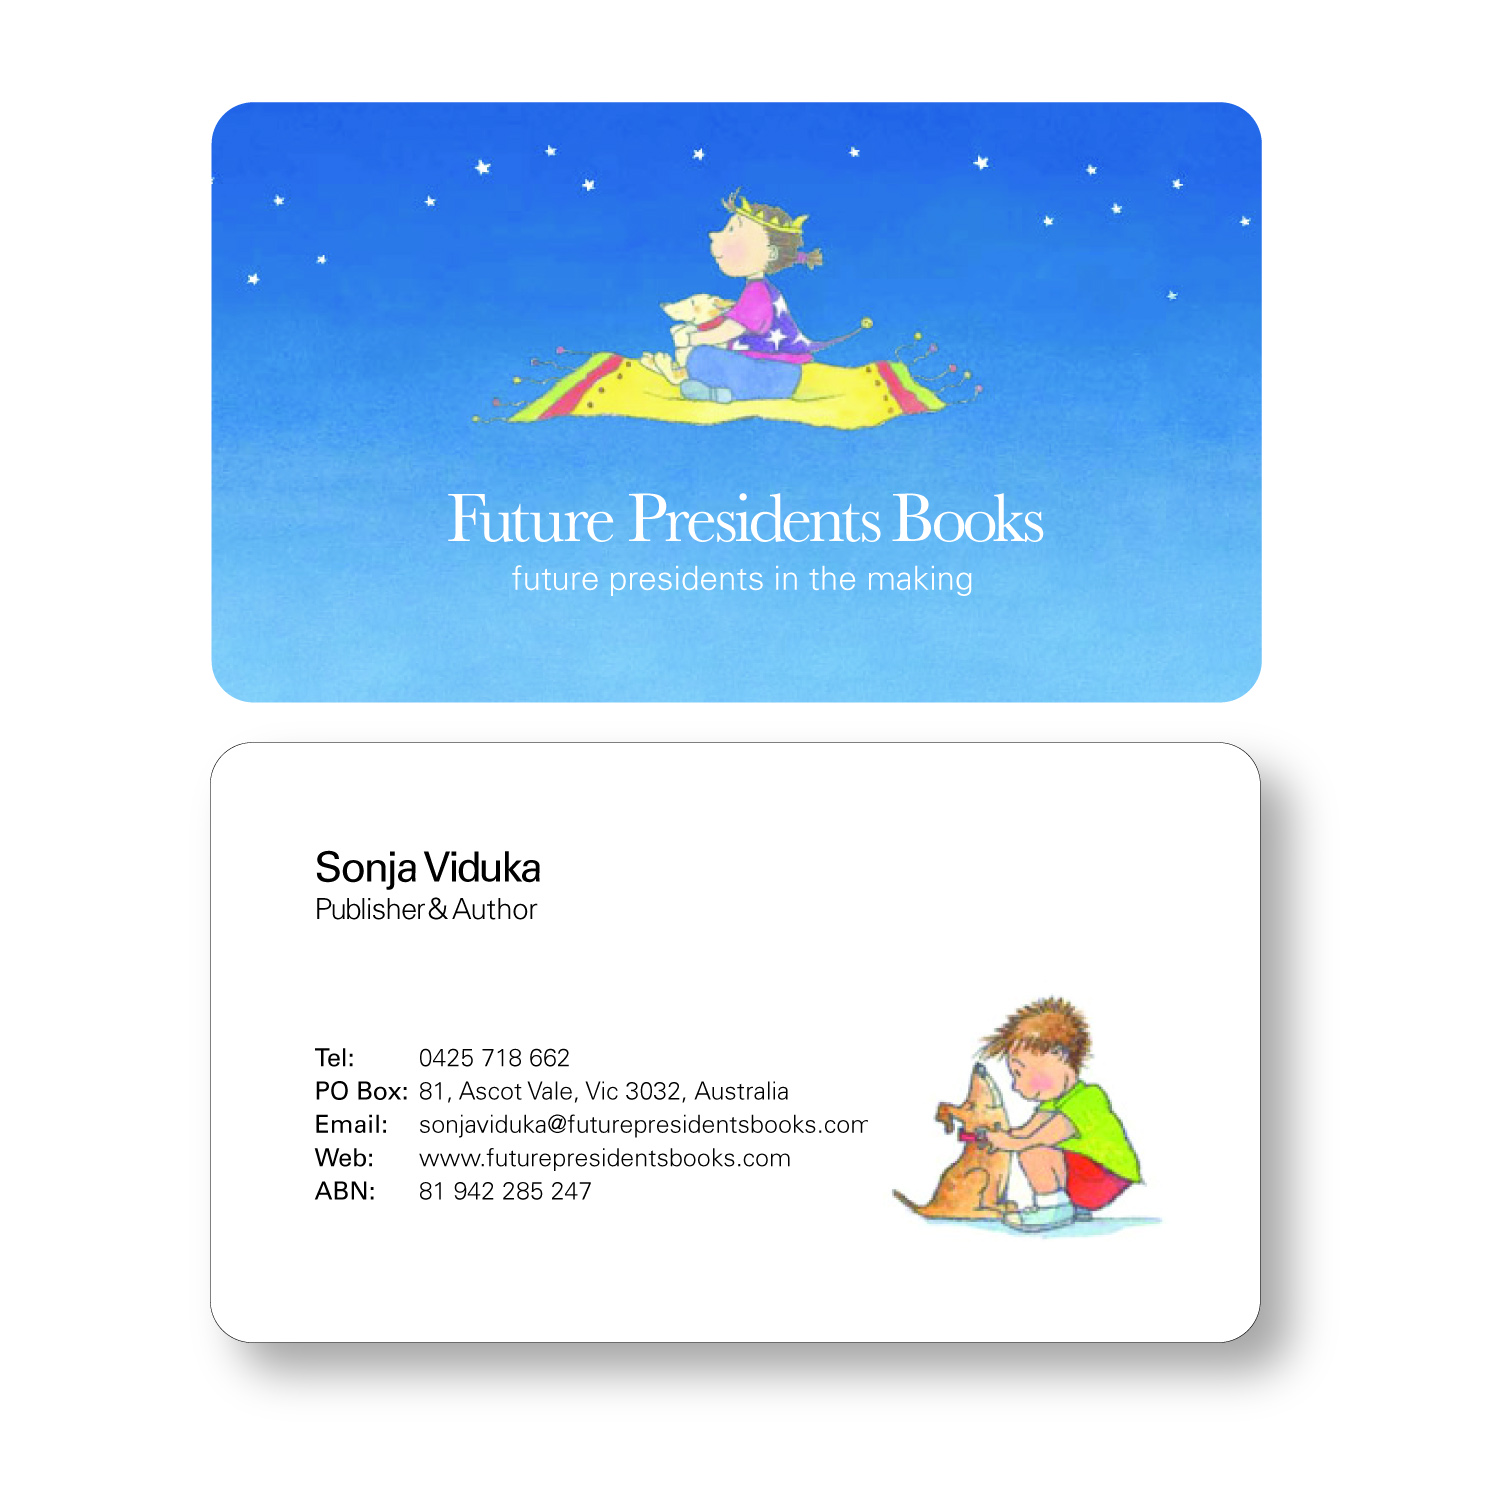 Business Card Design Books Images - Card Design And Card Template